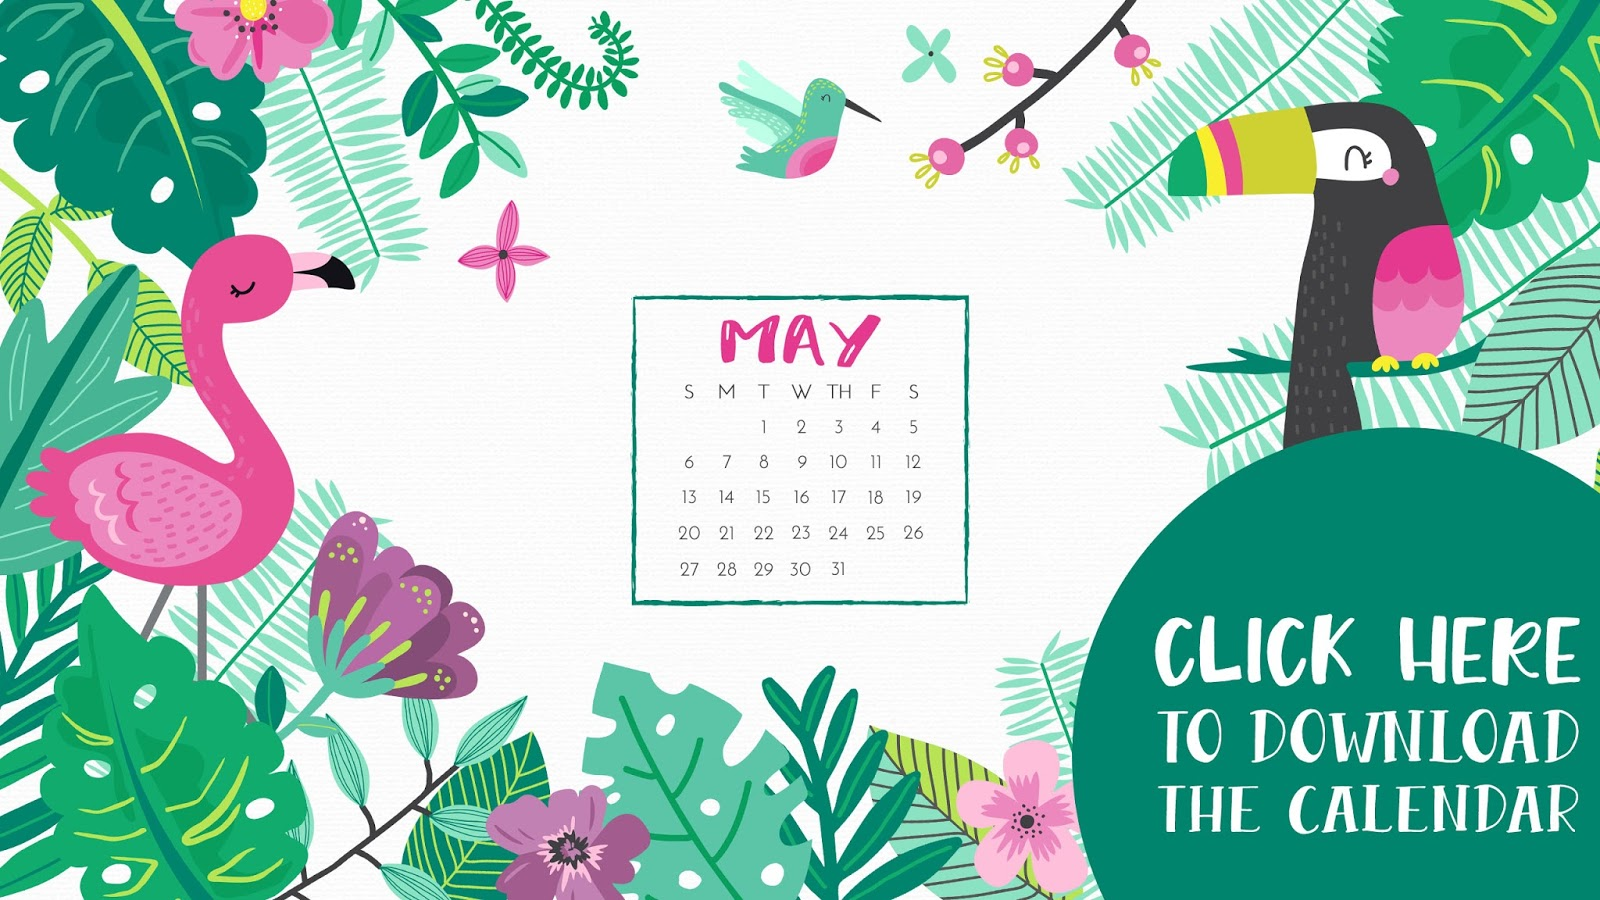 • May 2018 • Computer Desktop Calendar Background and matching iPhone Backgrounds